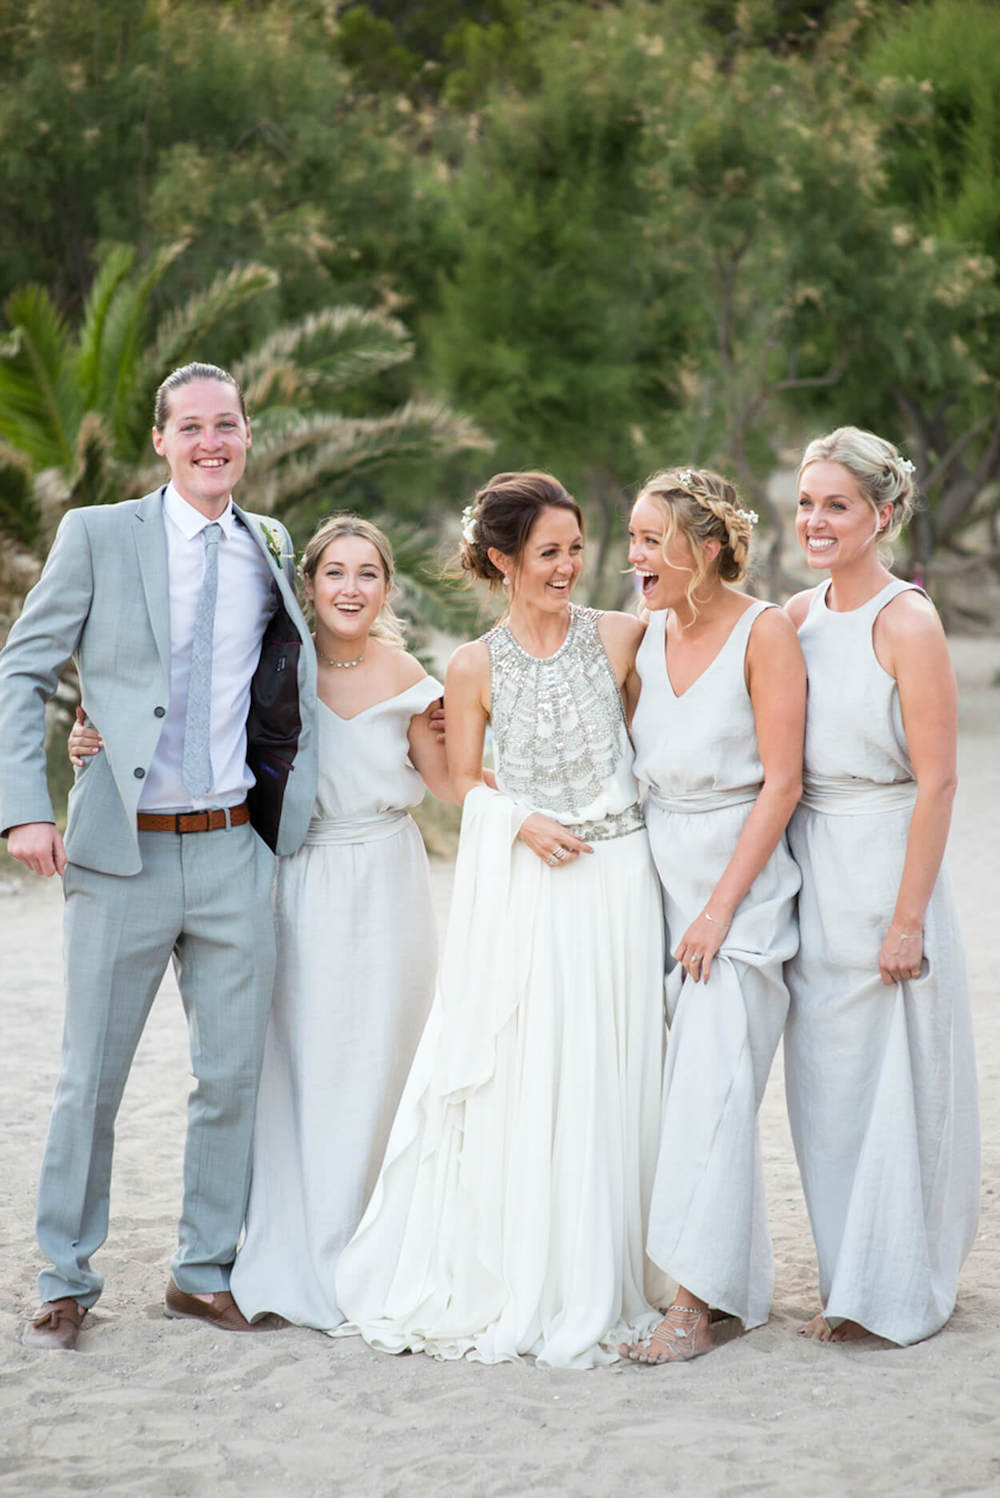 sisters beach wedding feet sand happy laughter elements benirras amanda wakeley